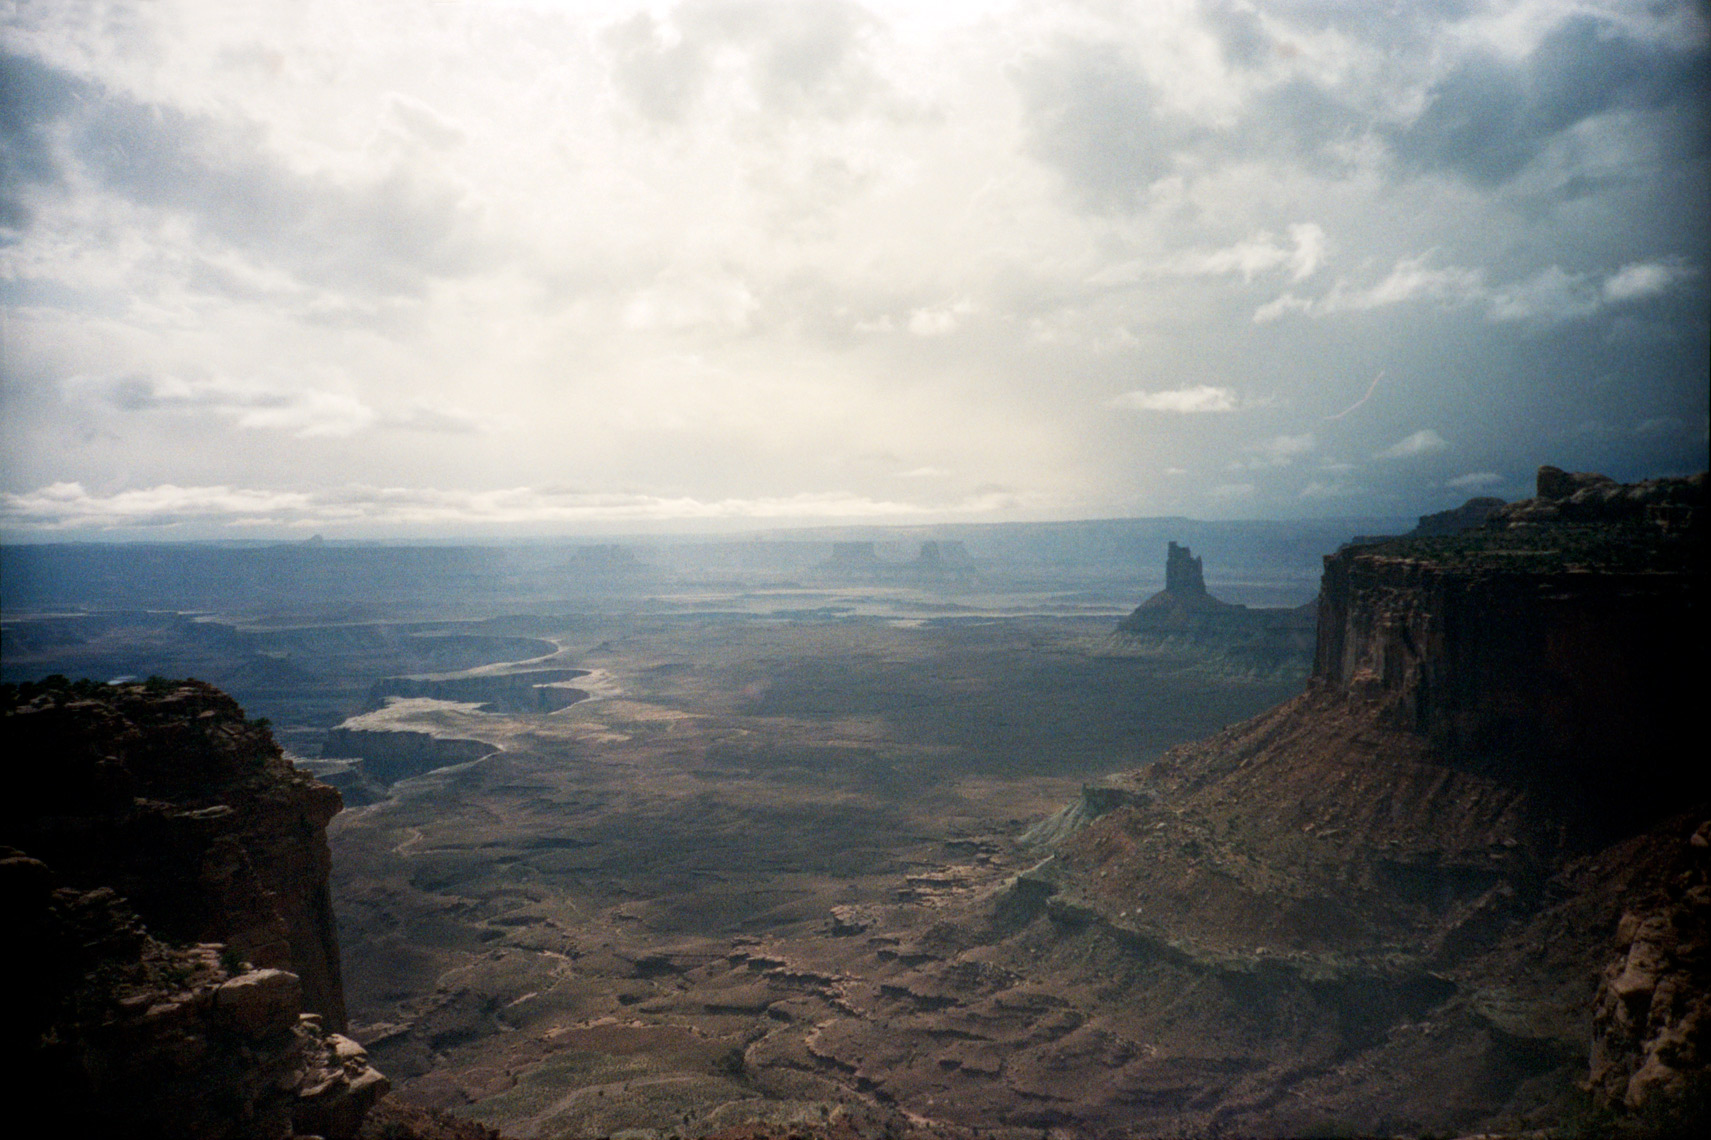 Webb Chappell landscape photograph of Canyonlands National Park Utah